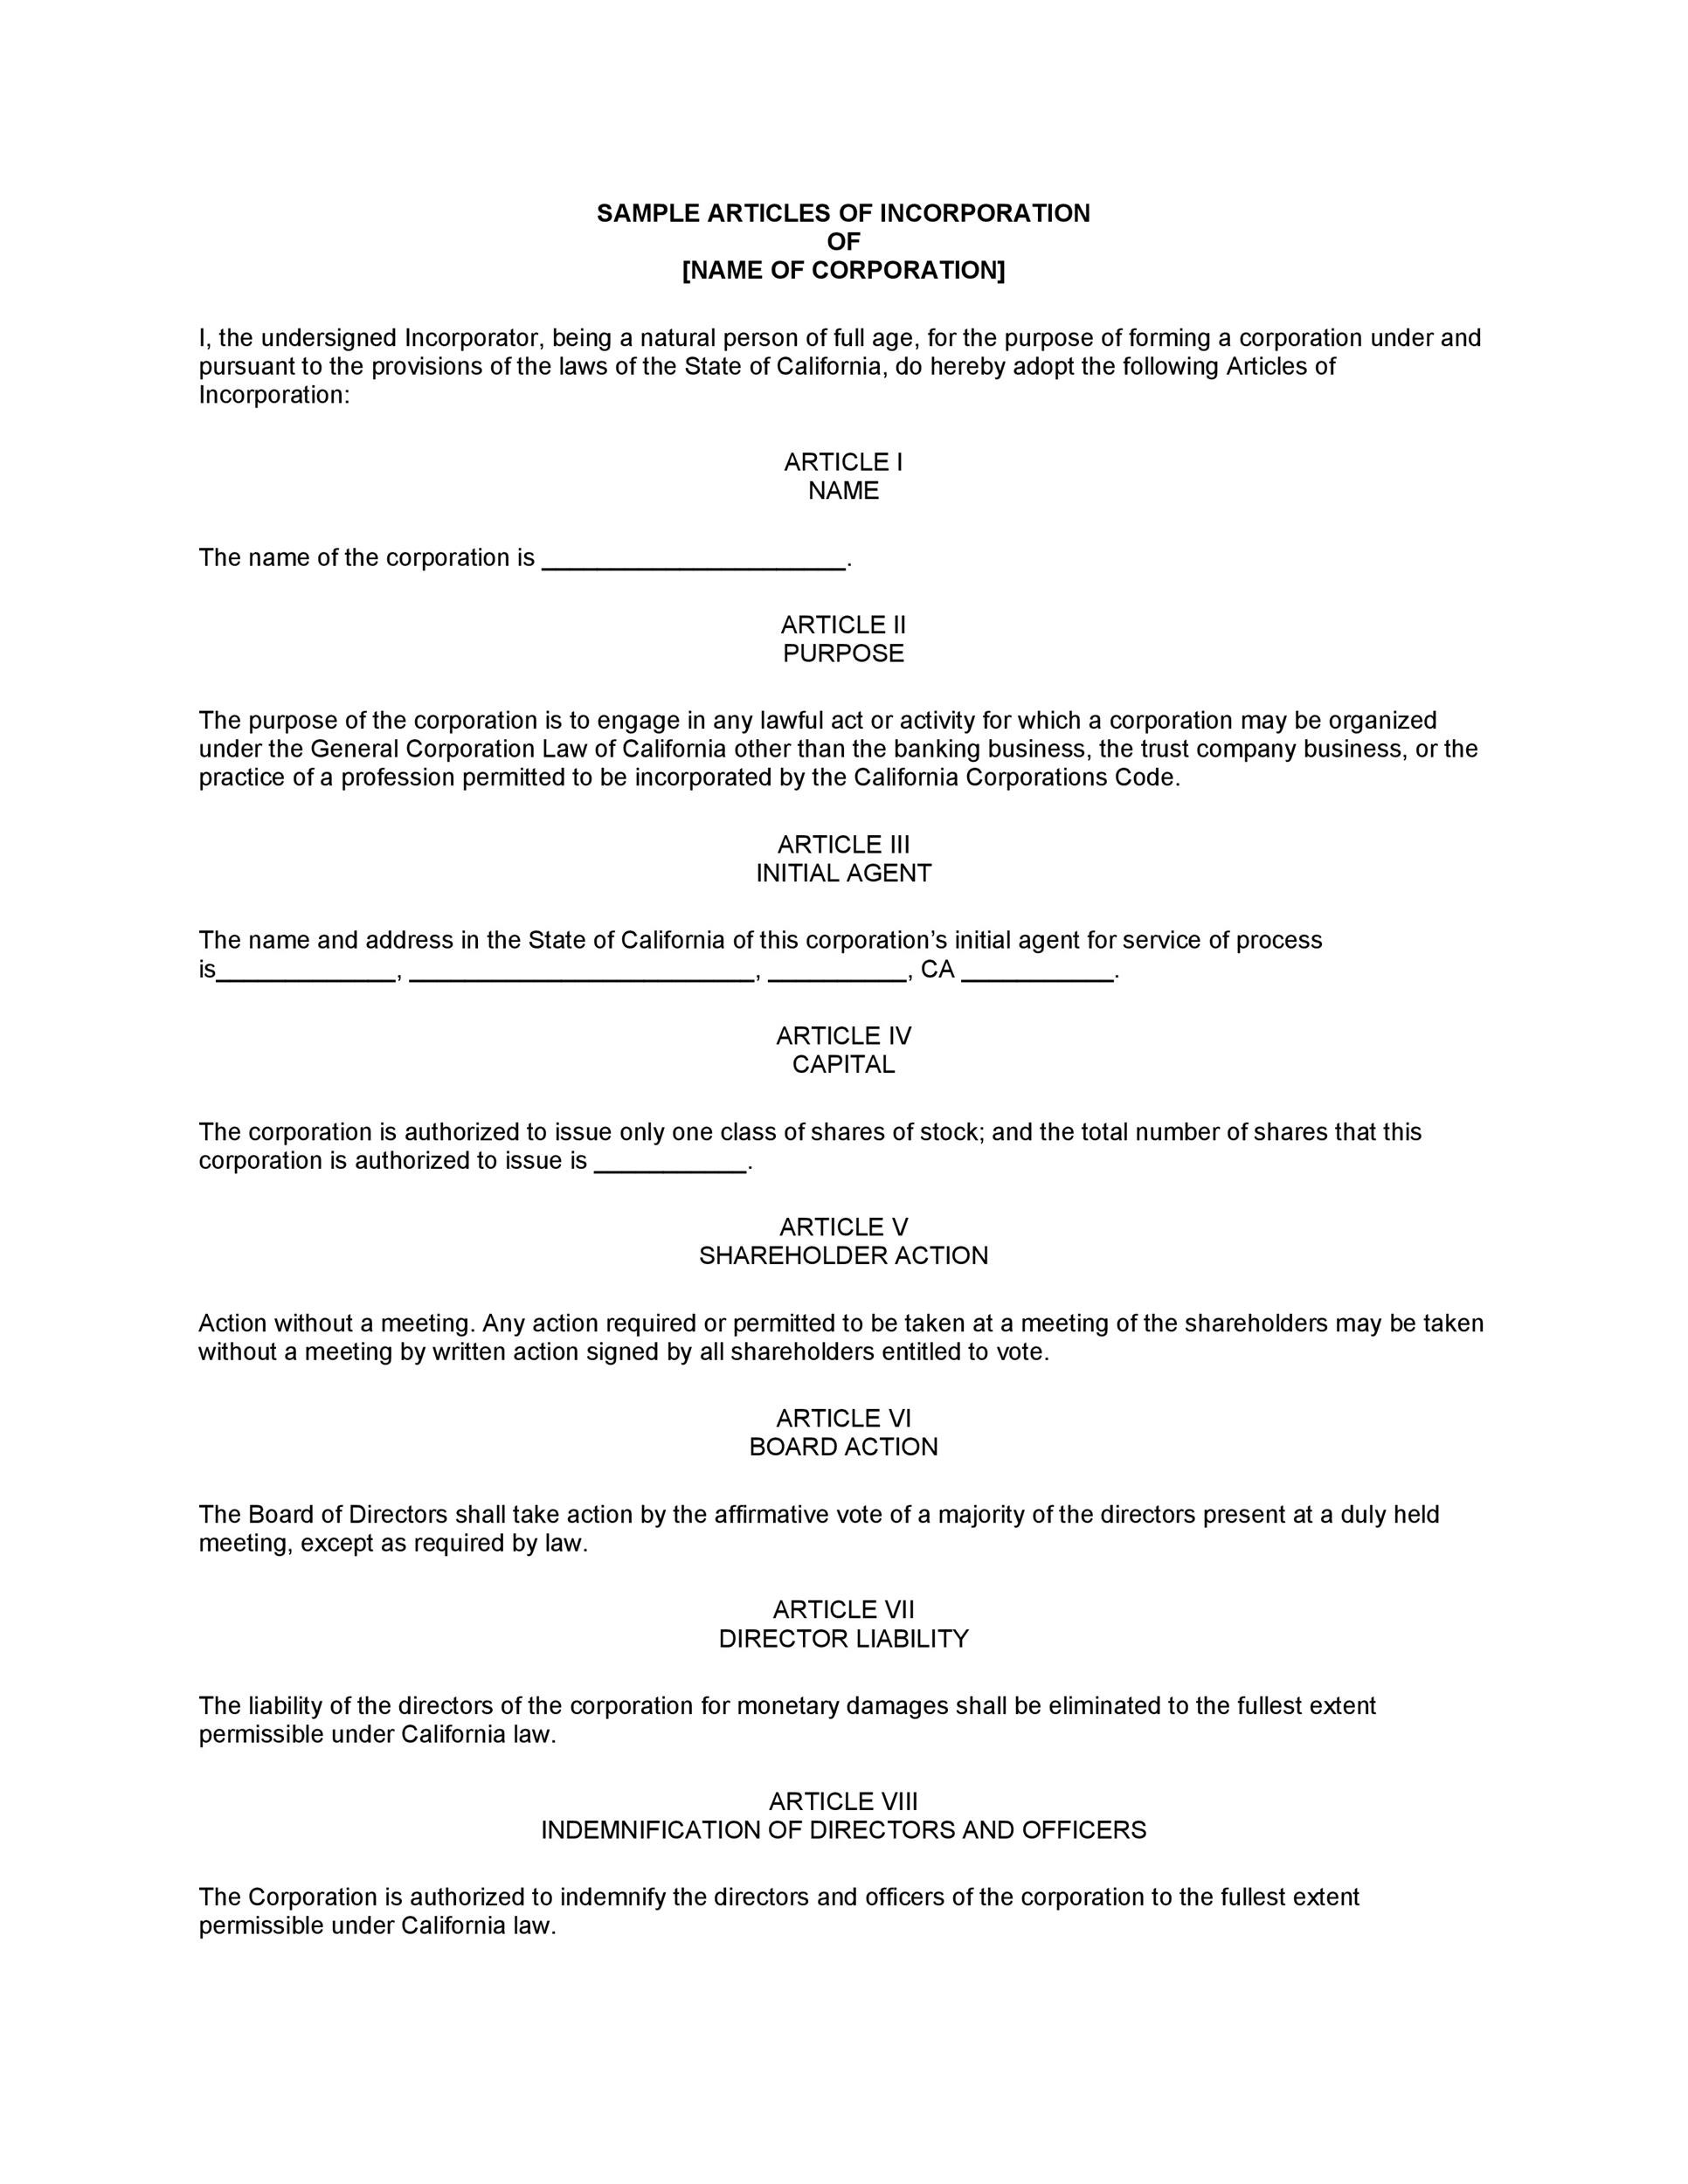 articles of incorporation template articles of incorporation 47 templates for any state 20506 | articles of incorporation template 01